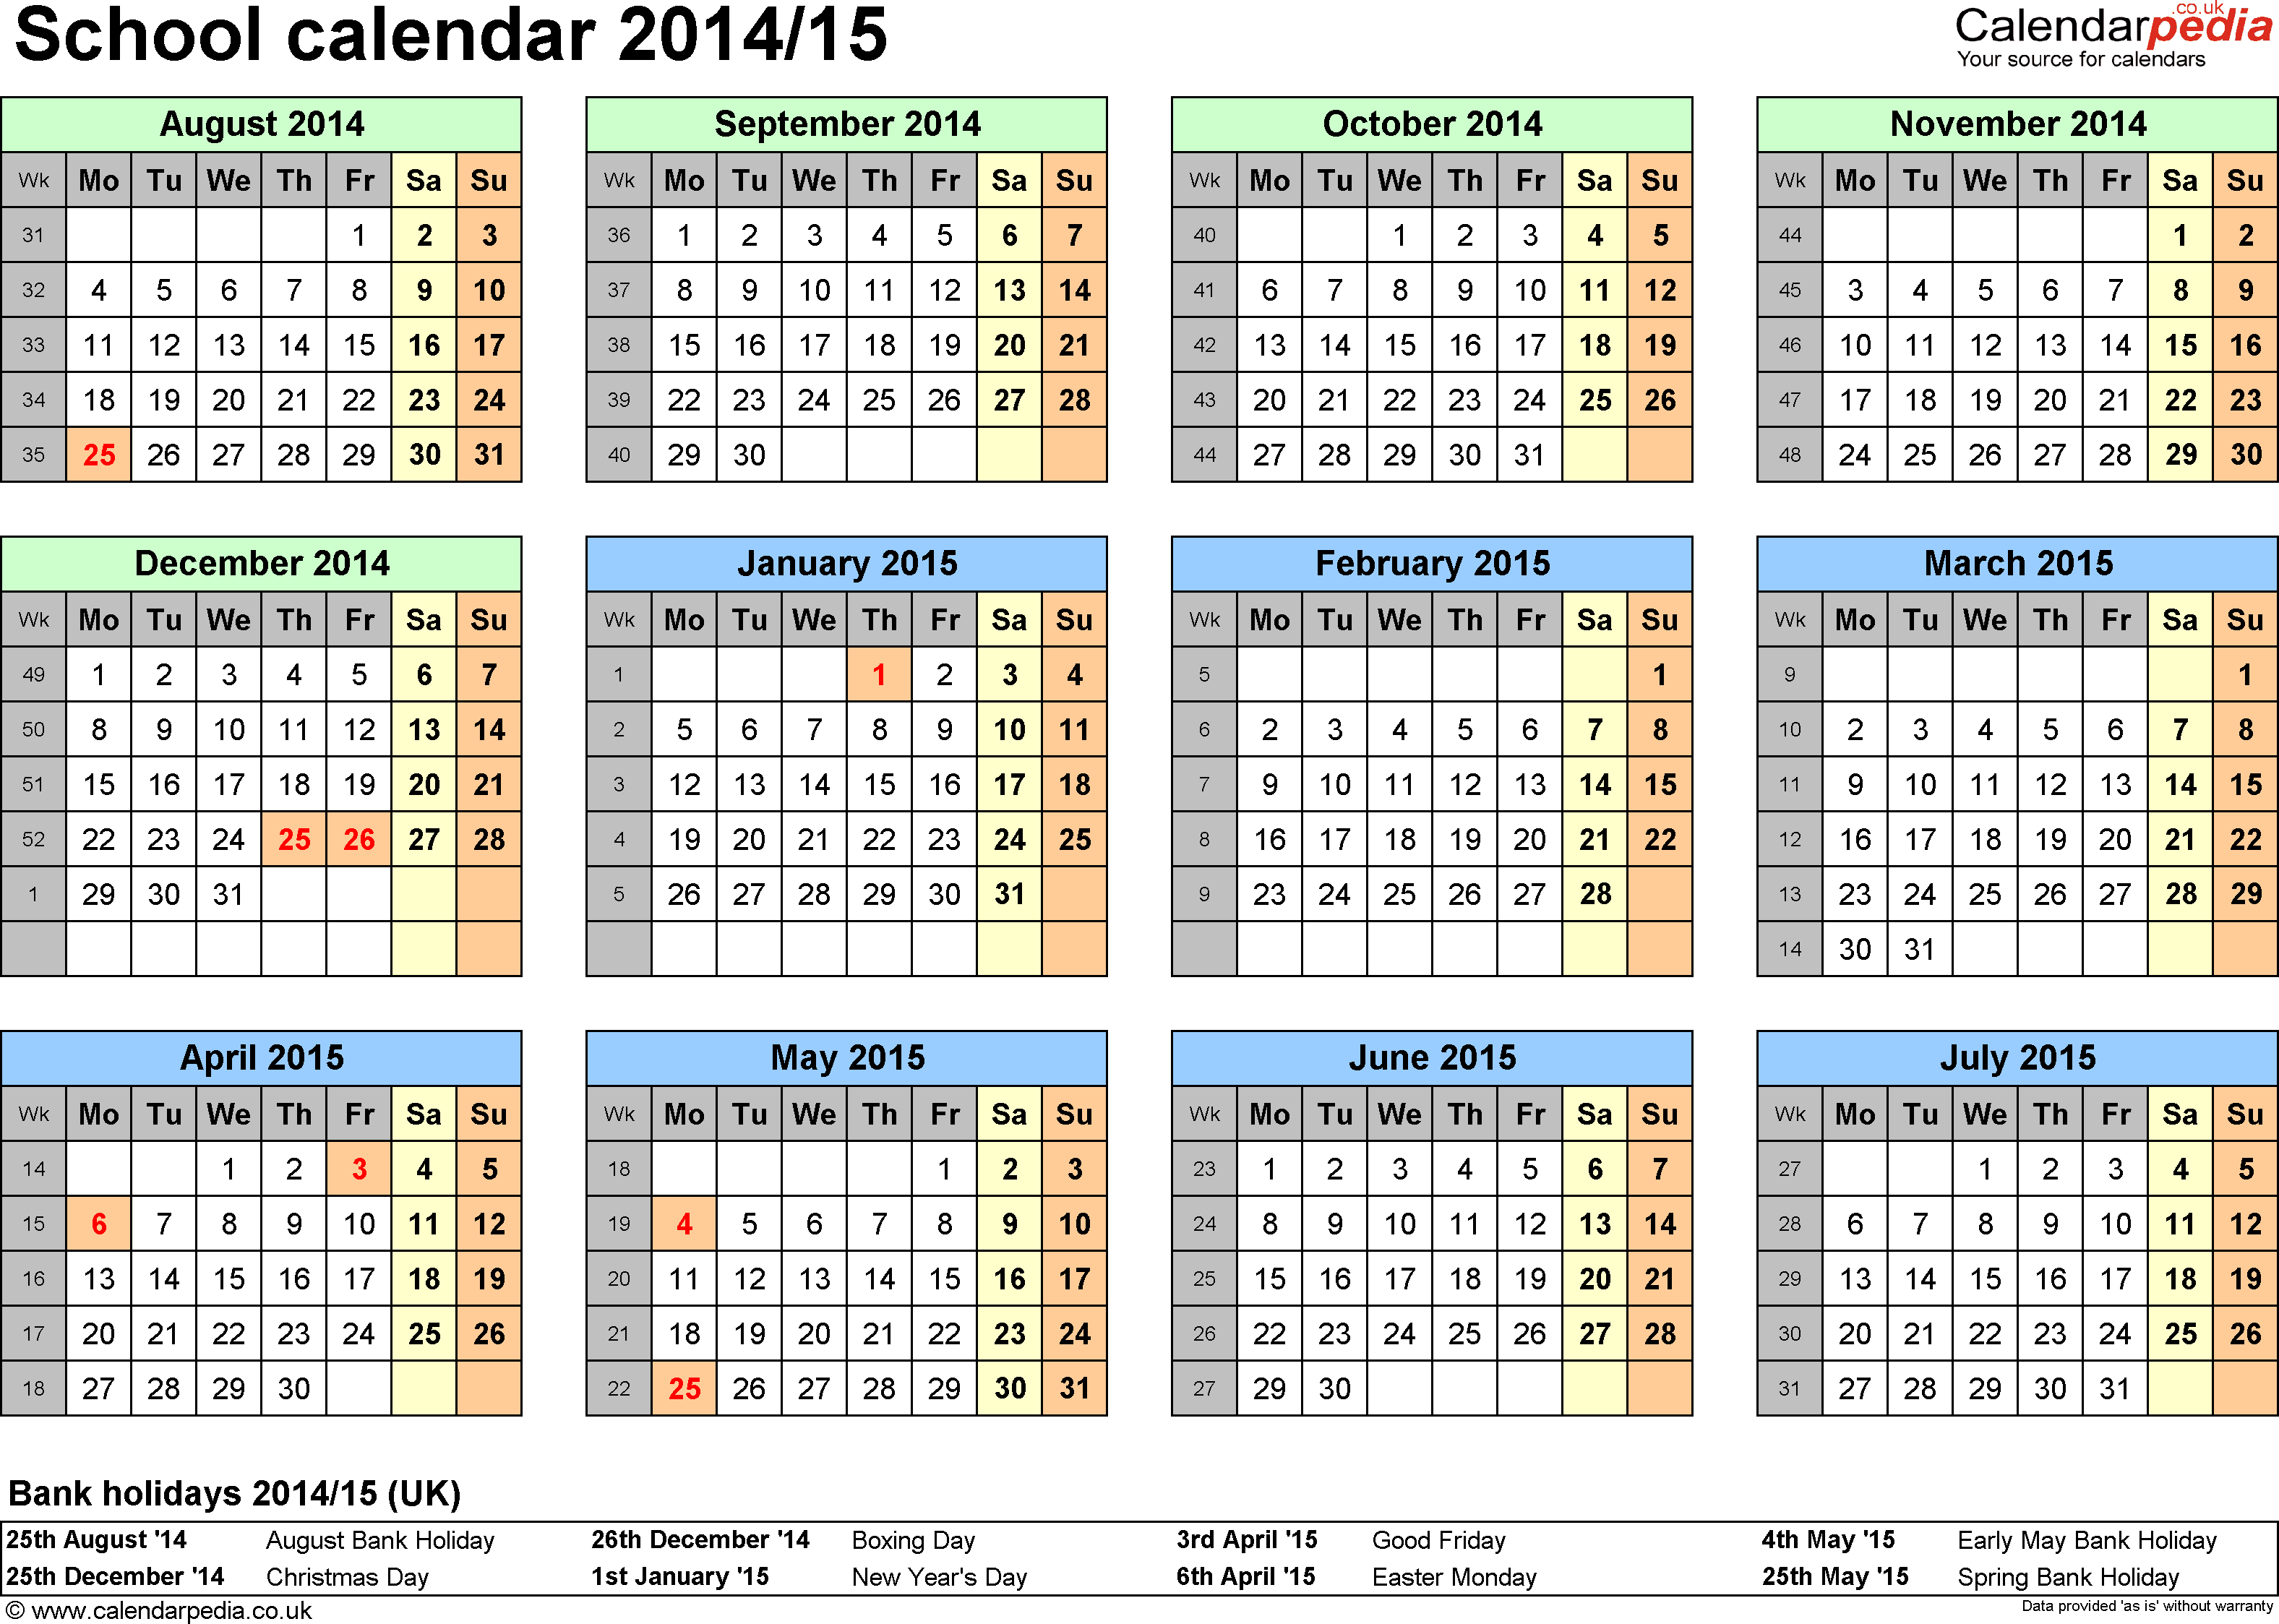 Template 4: School year calendars 2014/15 as Excel template, year overview, 1 page